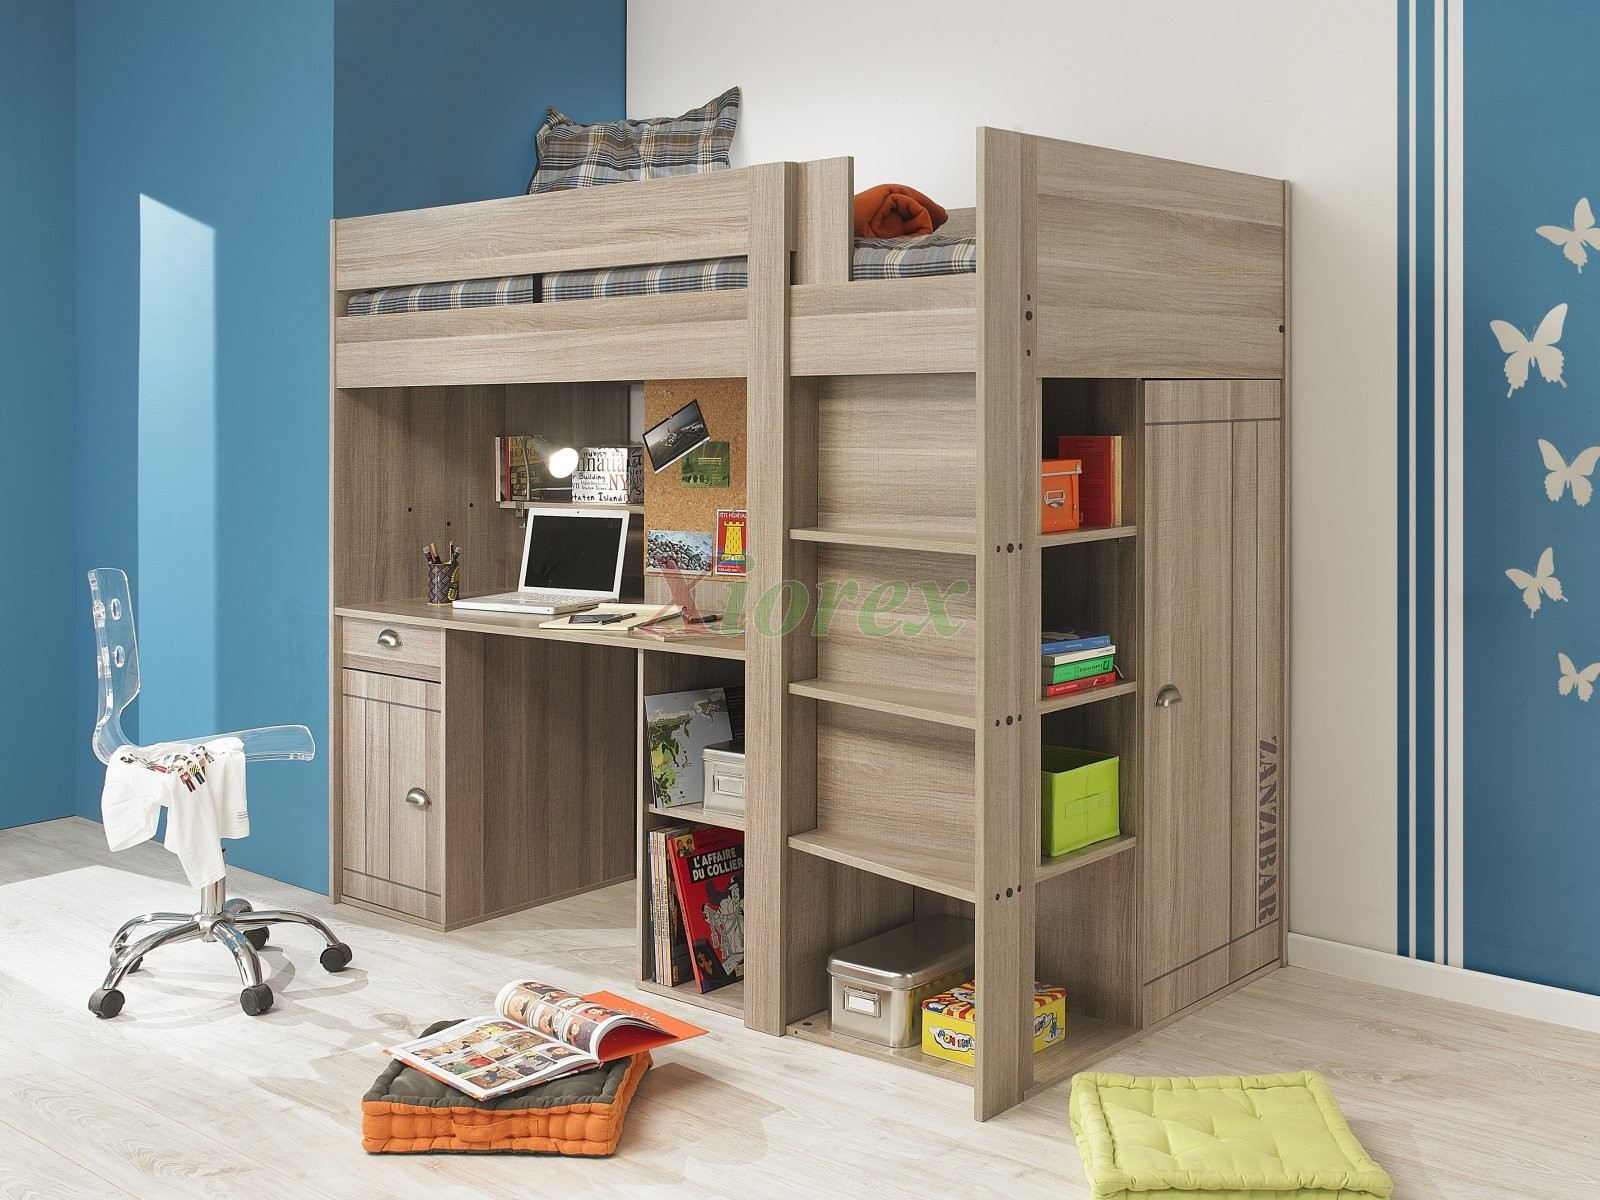 Gami Largo Loft Beds for Teens Canada with Desk & Closet ...